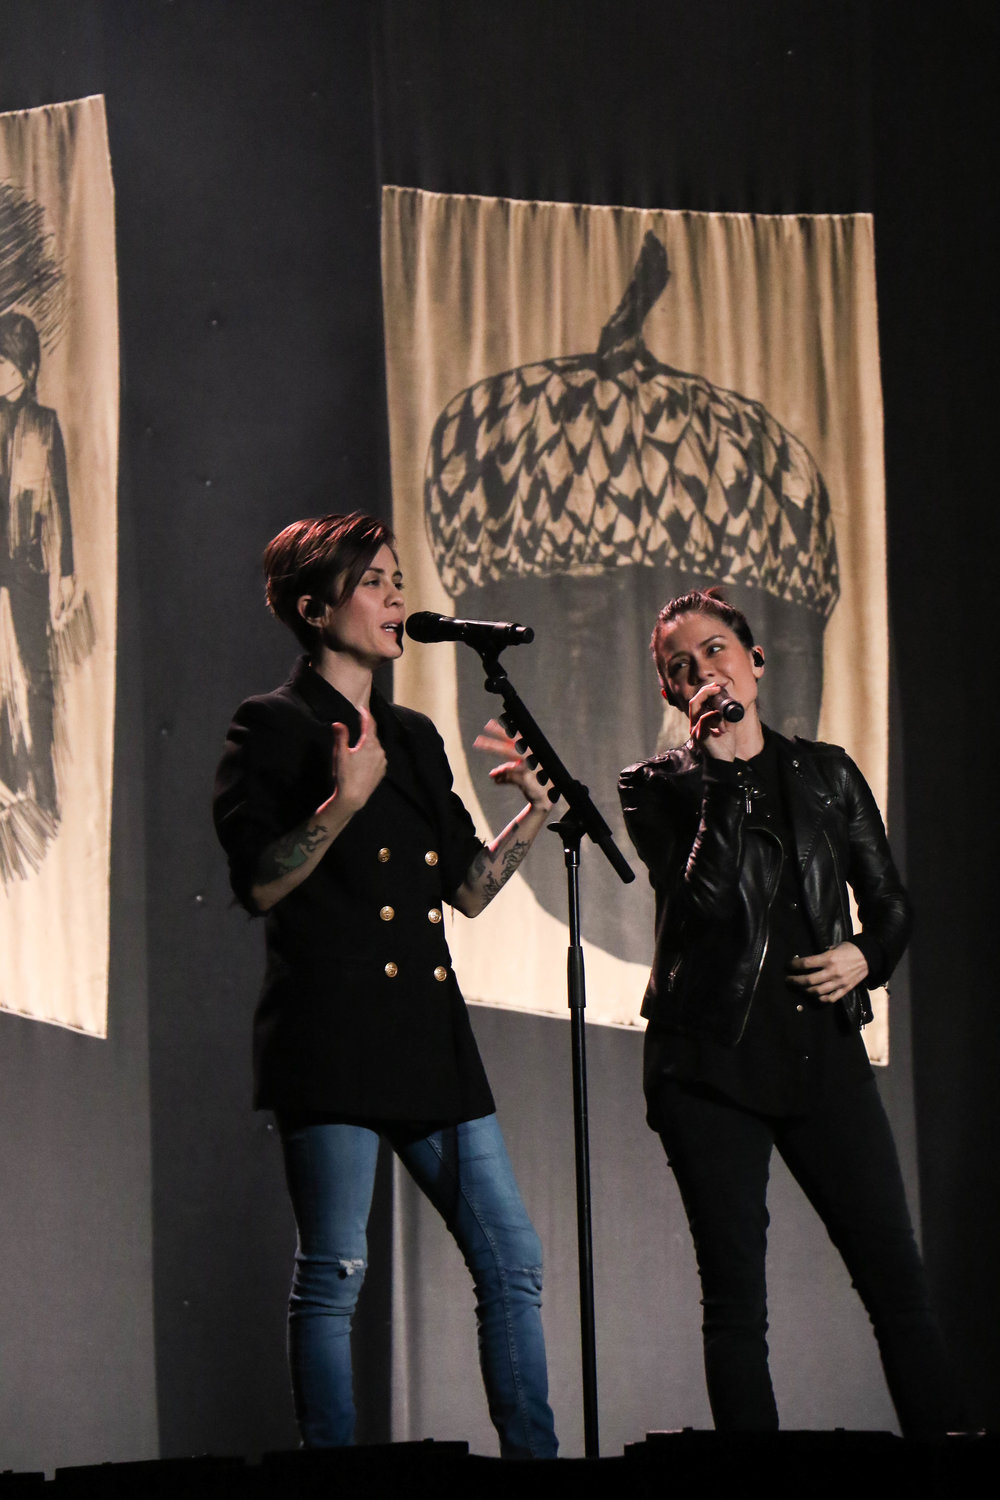 Tegan & Sara spoke of their newest endeavor, the Tegan & Sara Foundation, which was launched in the fall of 2016.